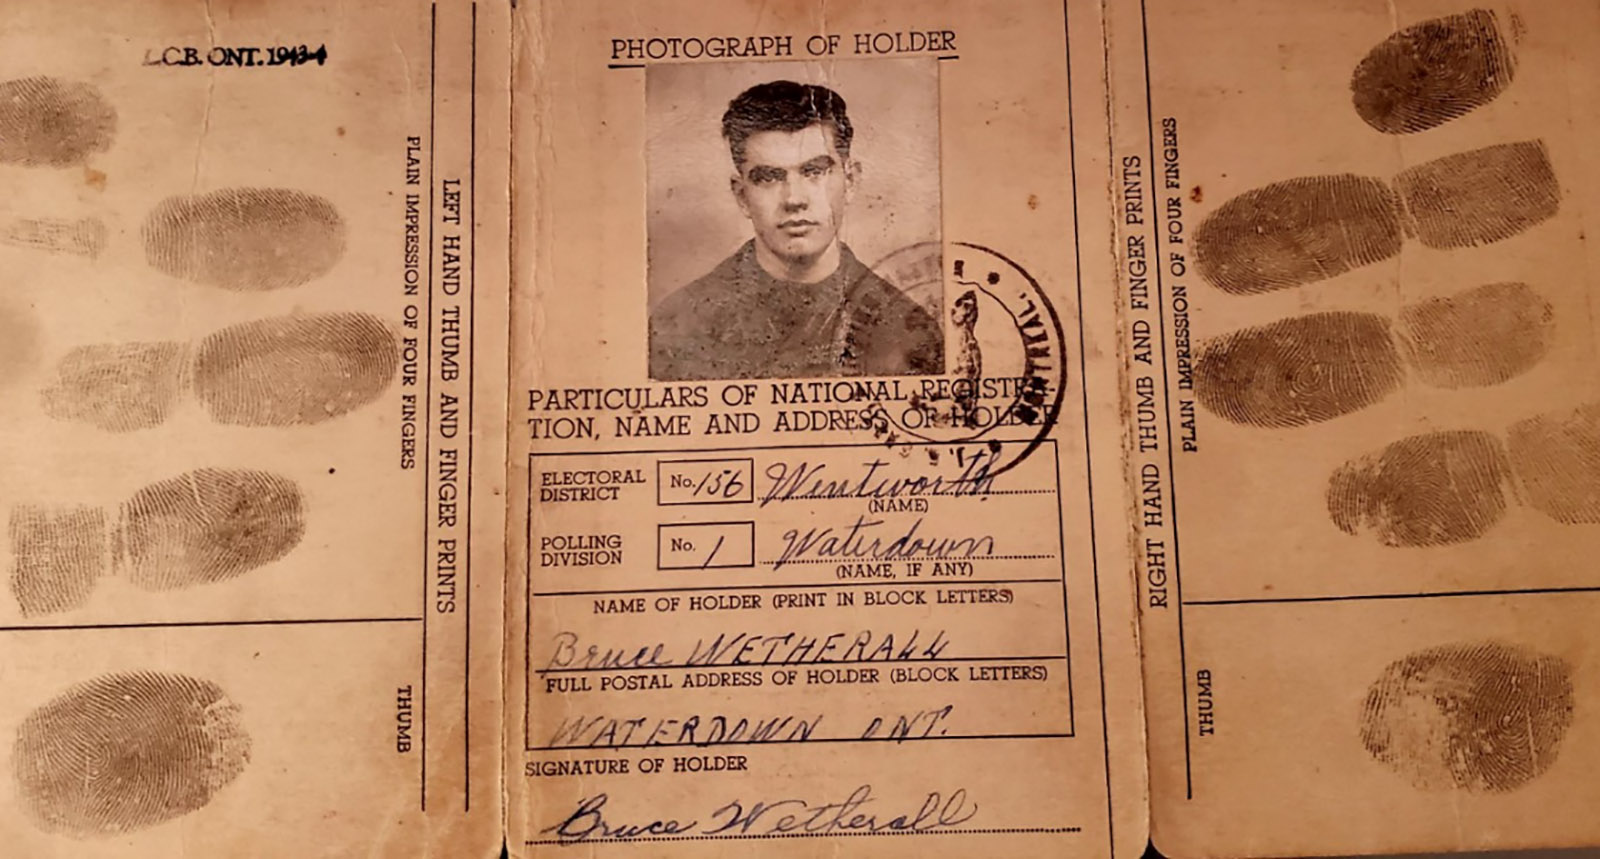 Officer Cadet Wetherall's war-era identification card